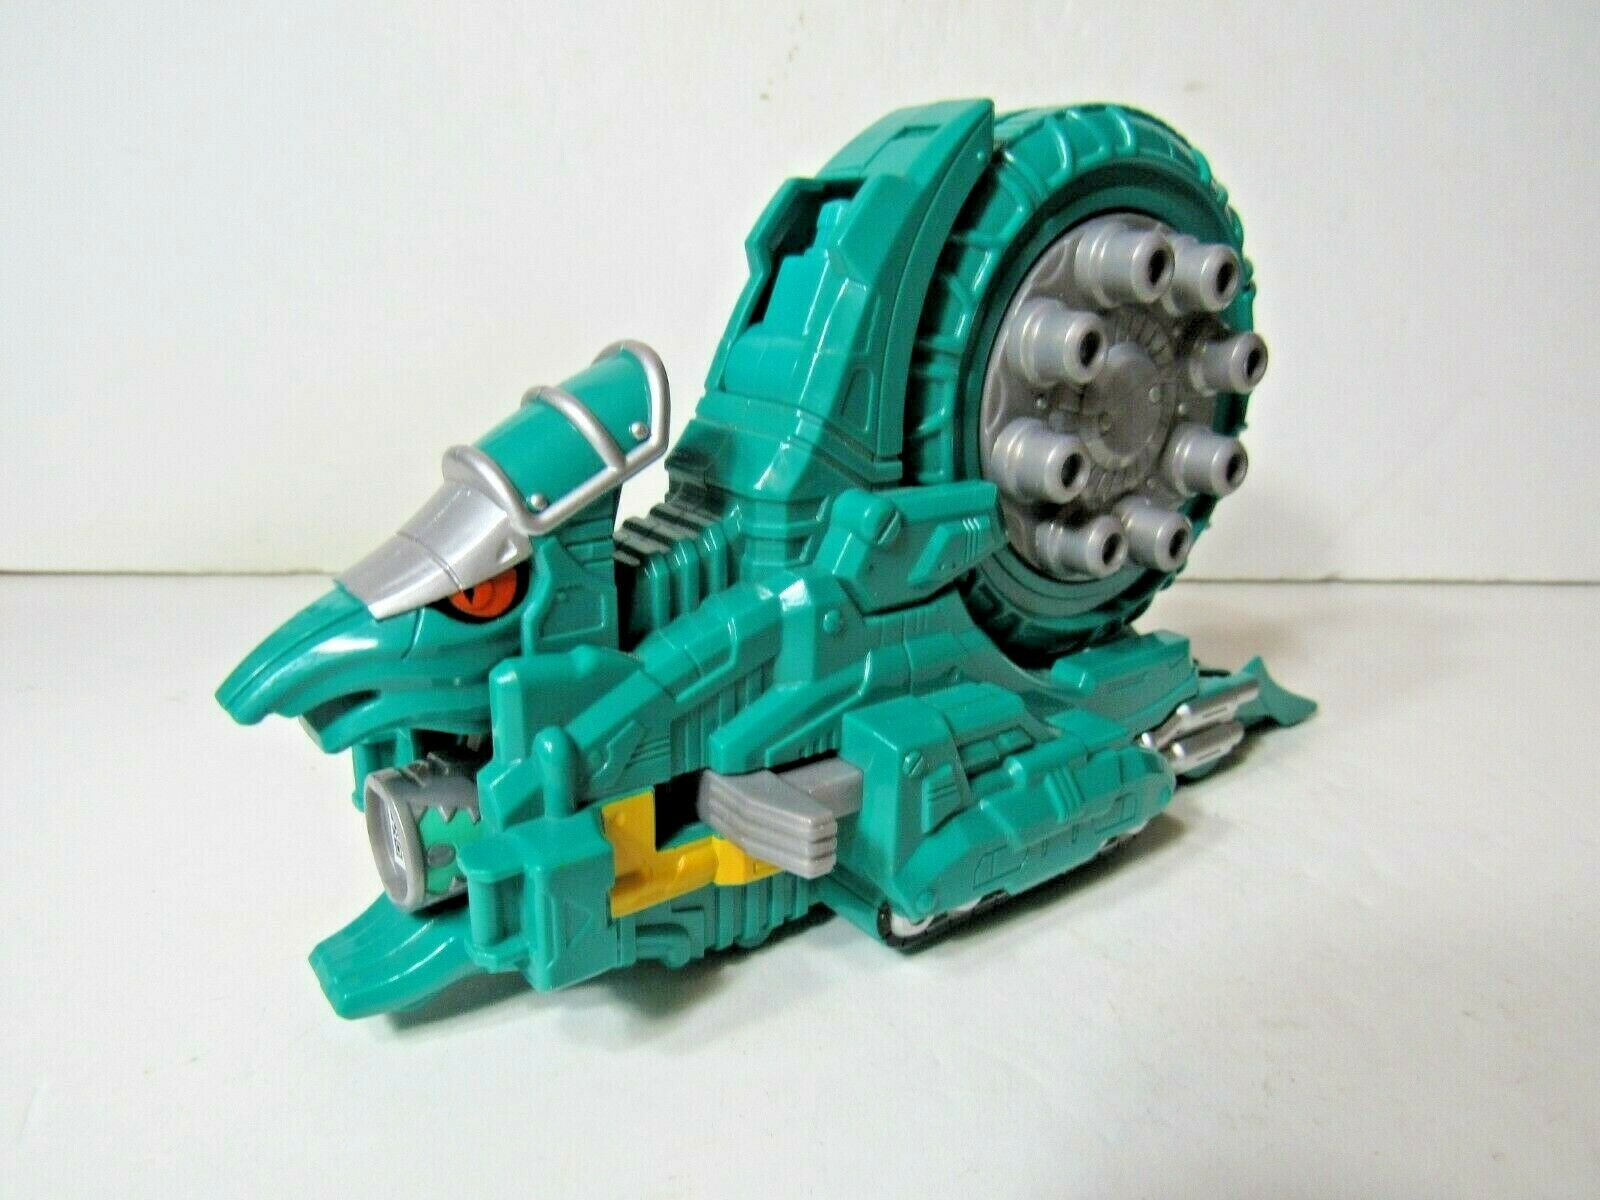 Mighty Morphin Power Rangers Dino Charge Ammonite Zord Super Teal Green